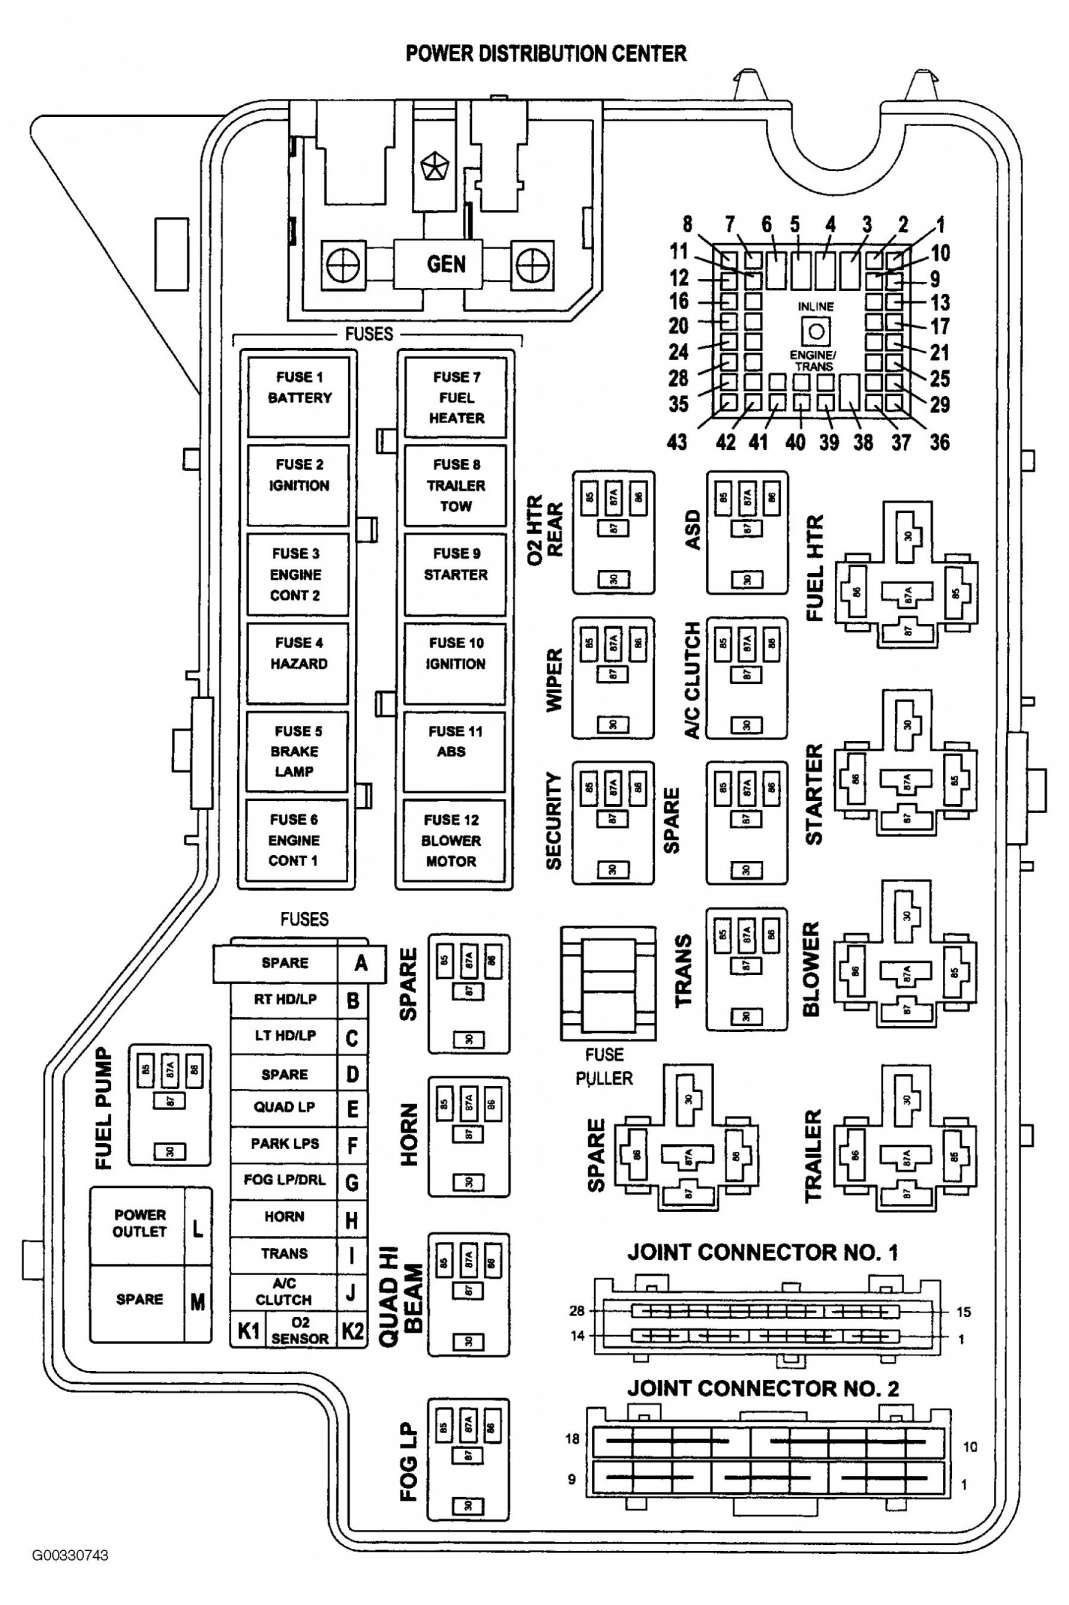 2003 Dodge Ram 1500 Fuse Box Diagram